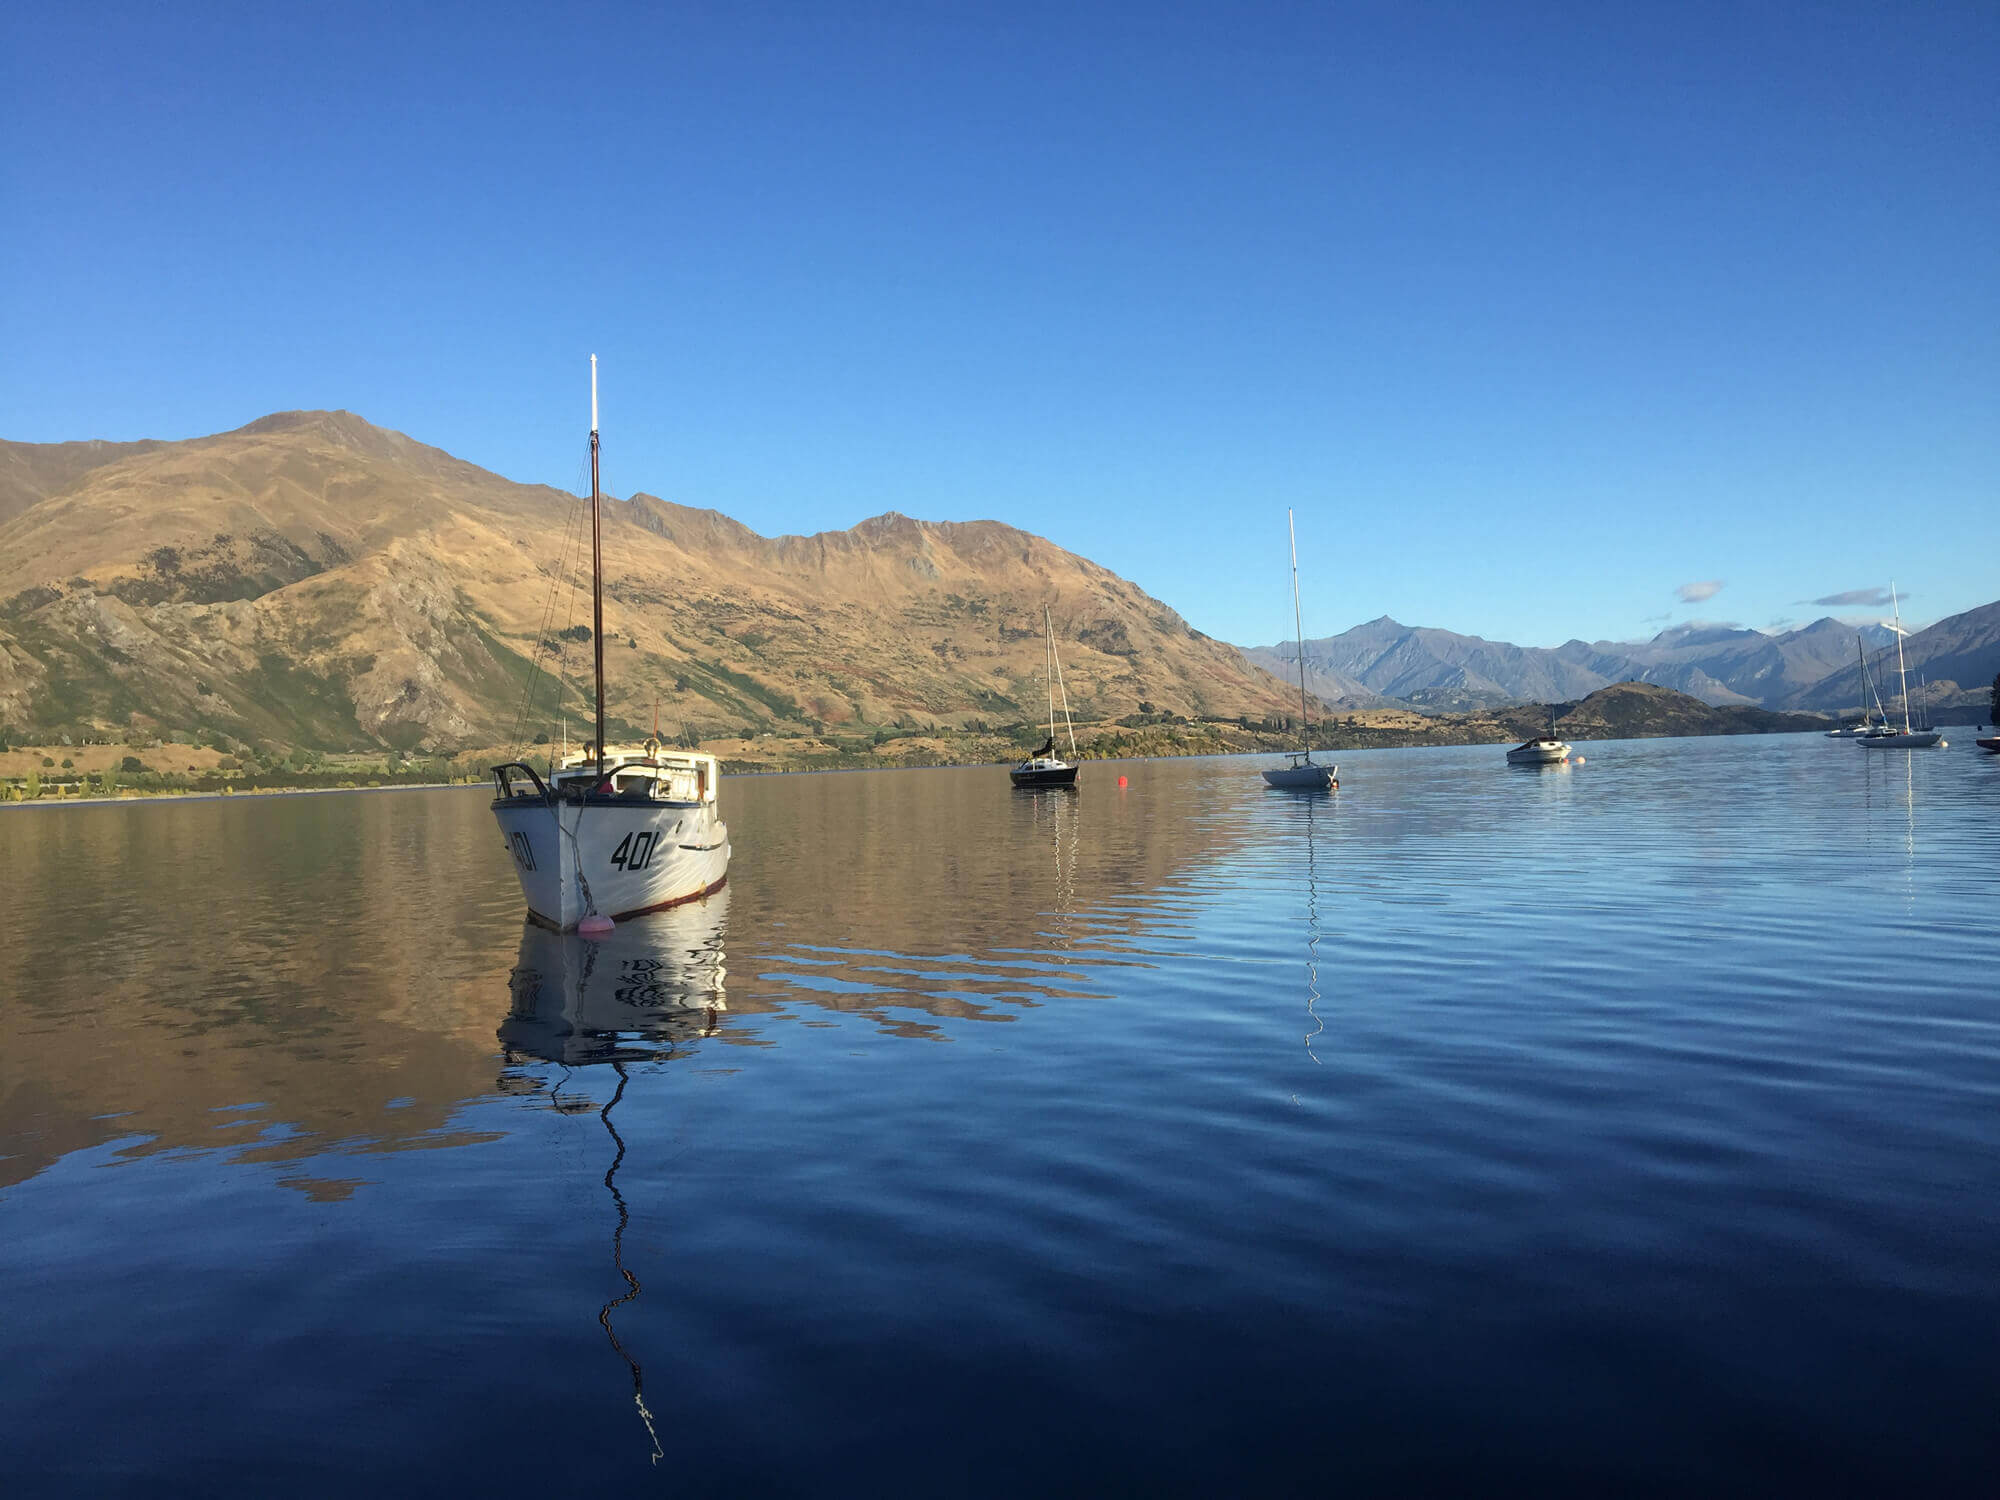 Central Resource Management - We undertake resource consent applications, environmental monitoring, feasibility studies and due diligence in the Wanaka & Queenstown region.Learn More